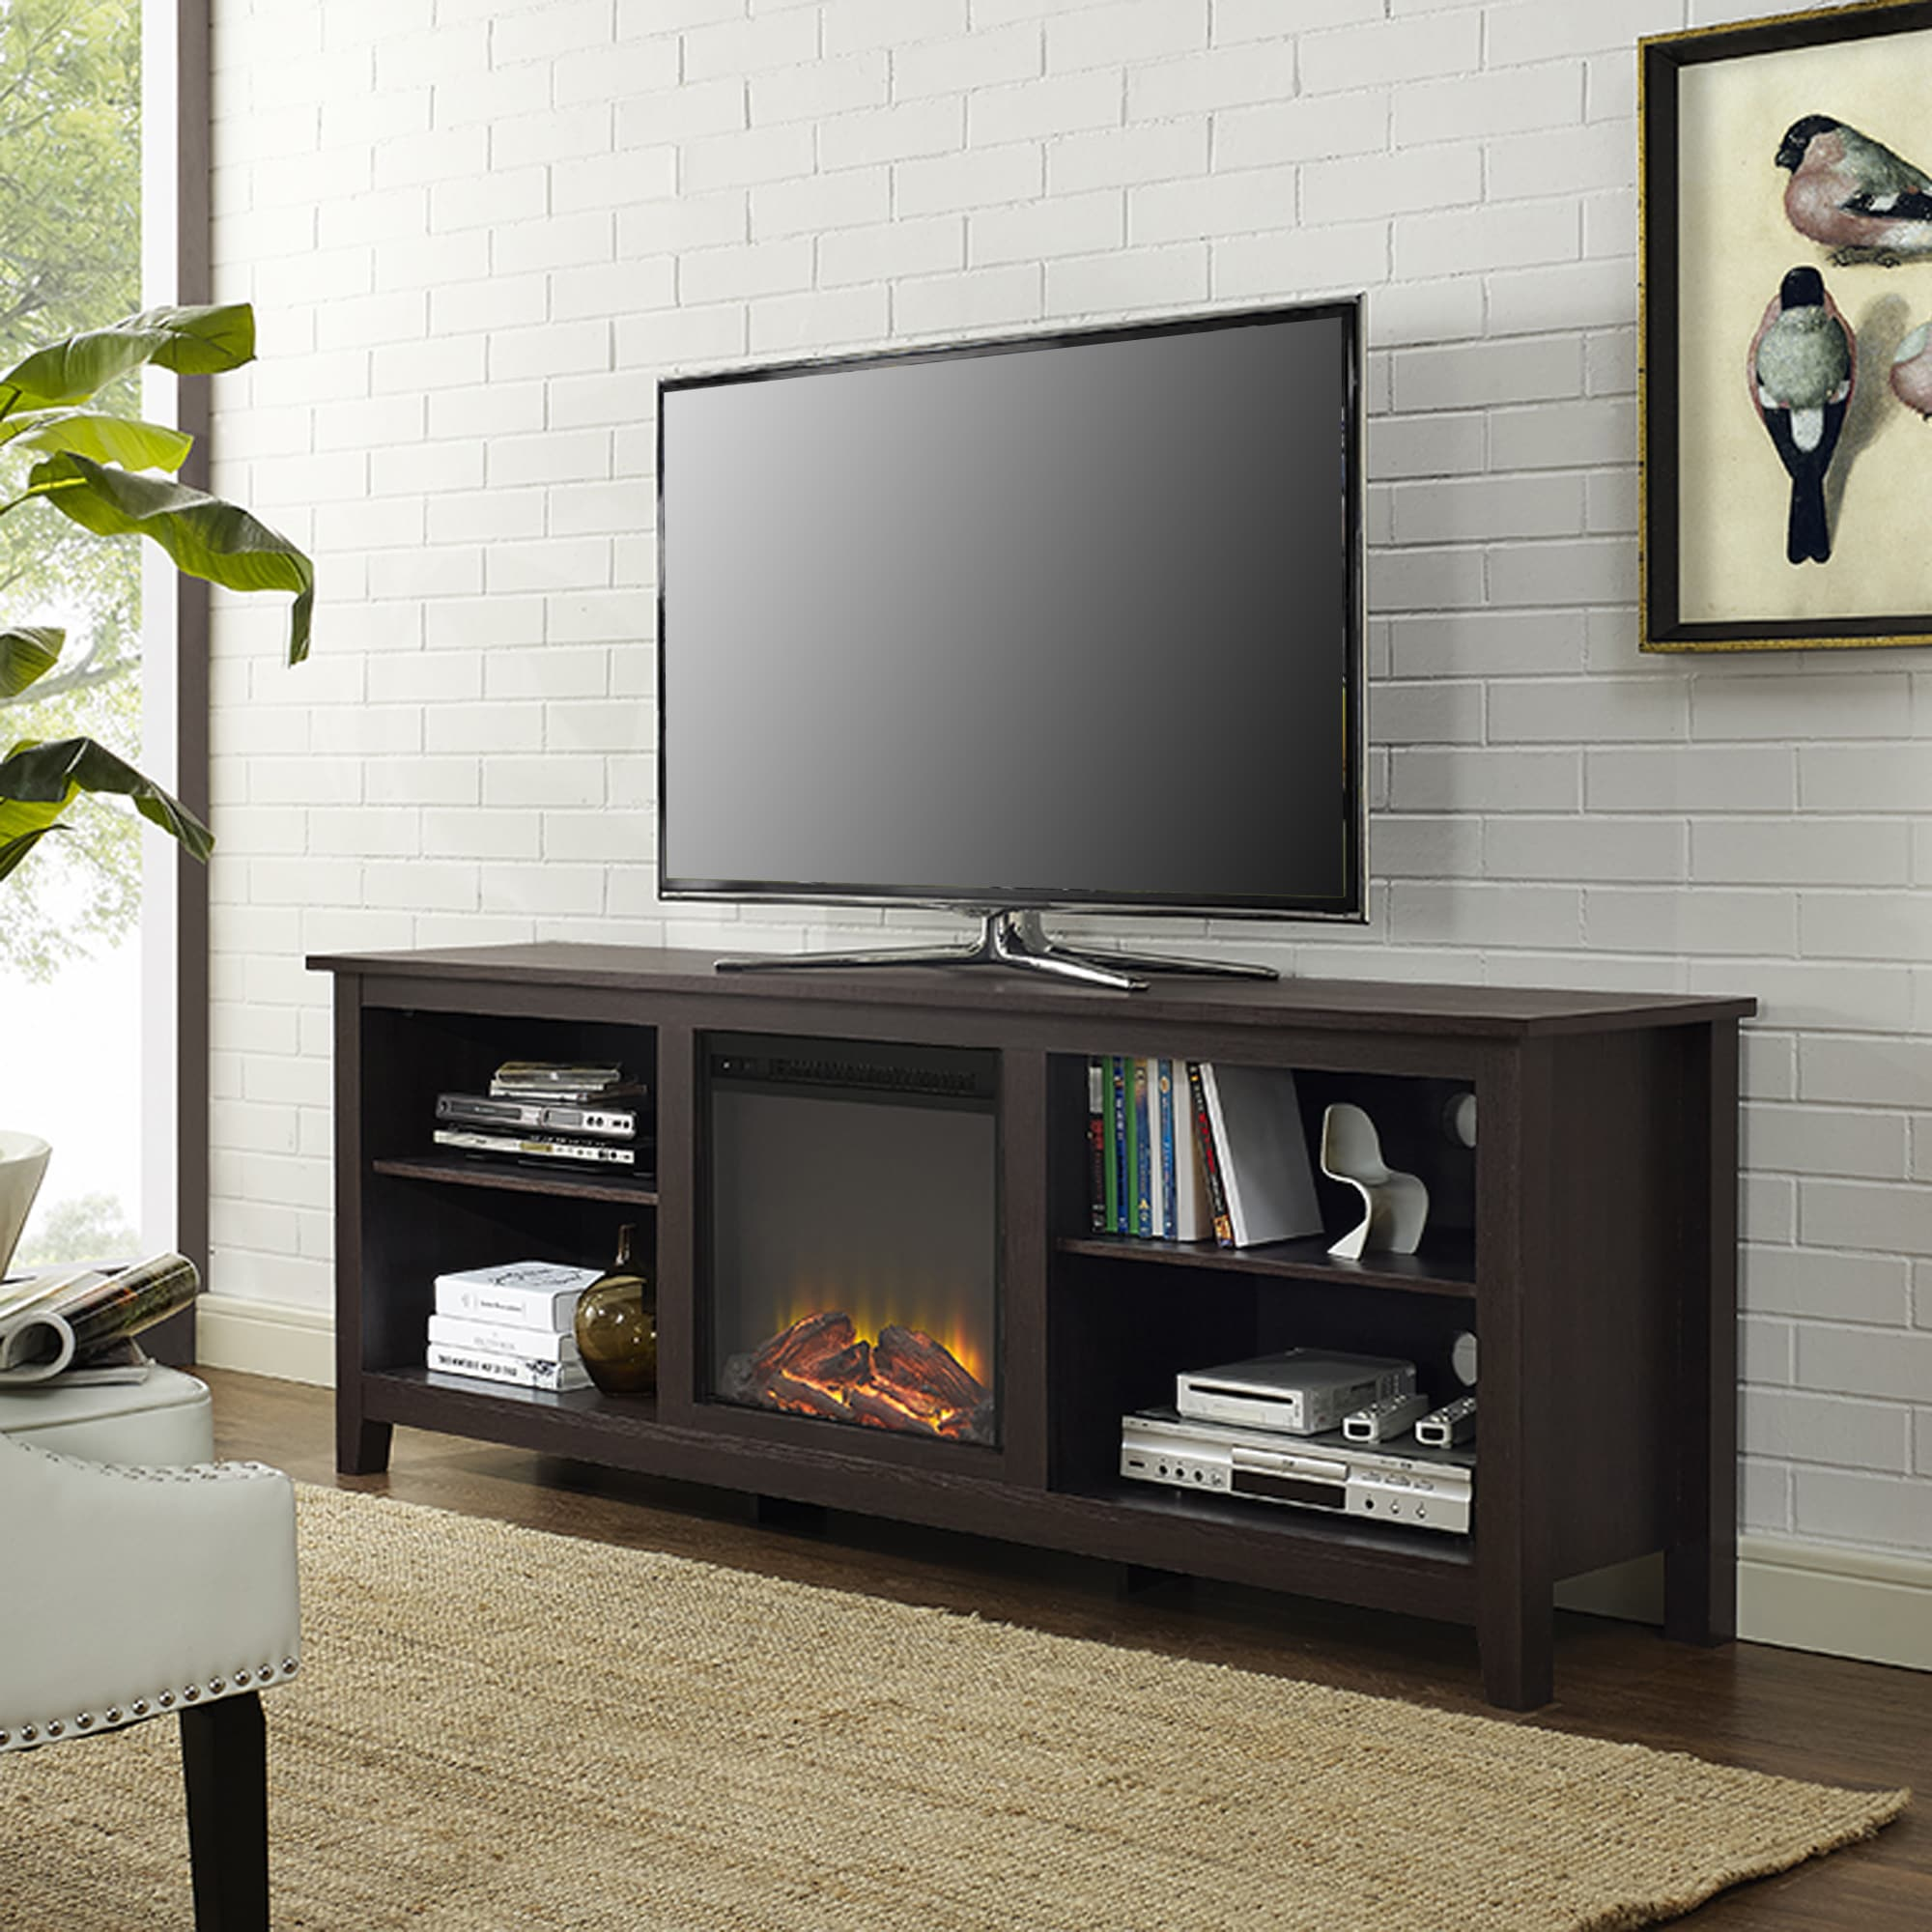 m tvstandfireplace cabinet t furniture brown tv fireplace stand with stands sq products jennifer wooden v rogness